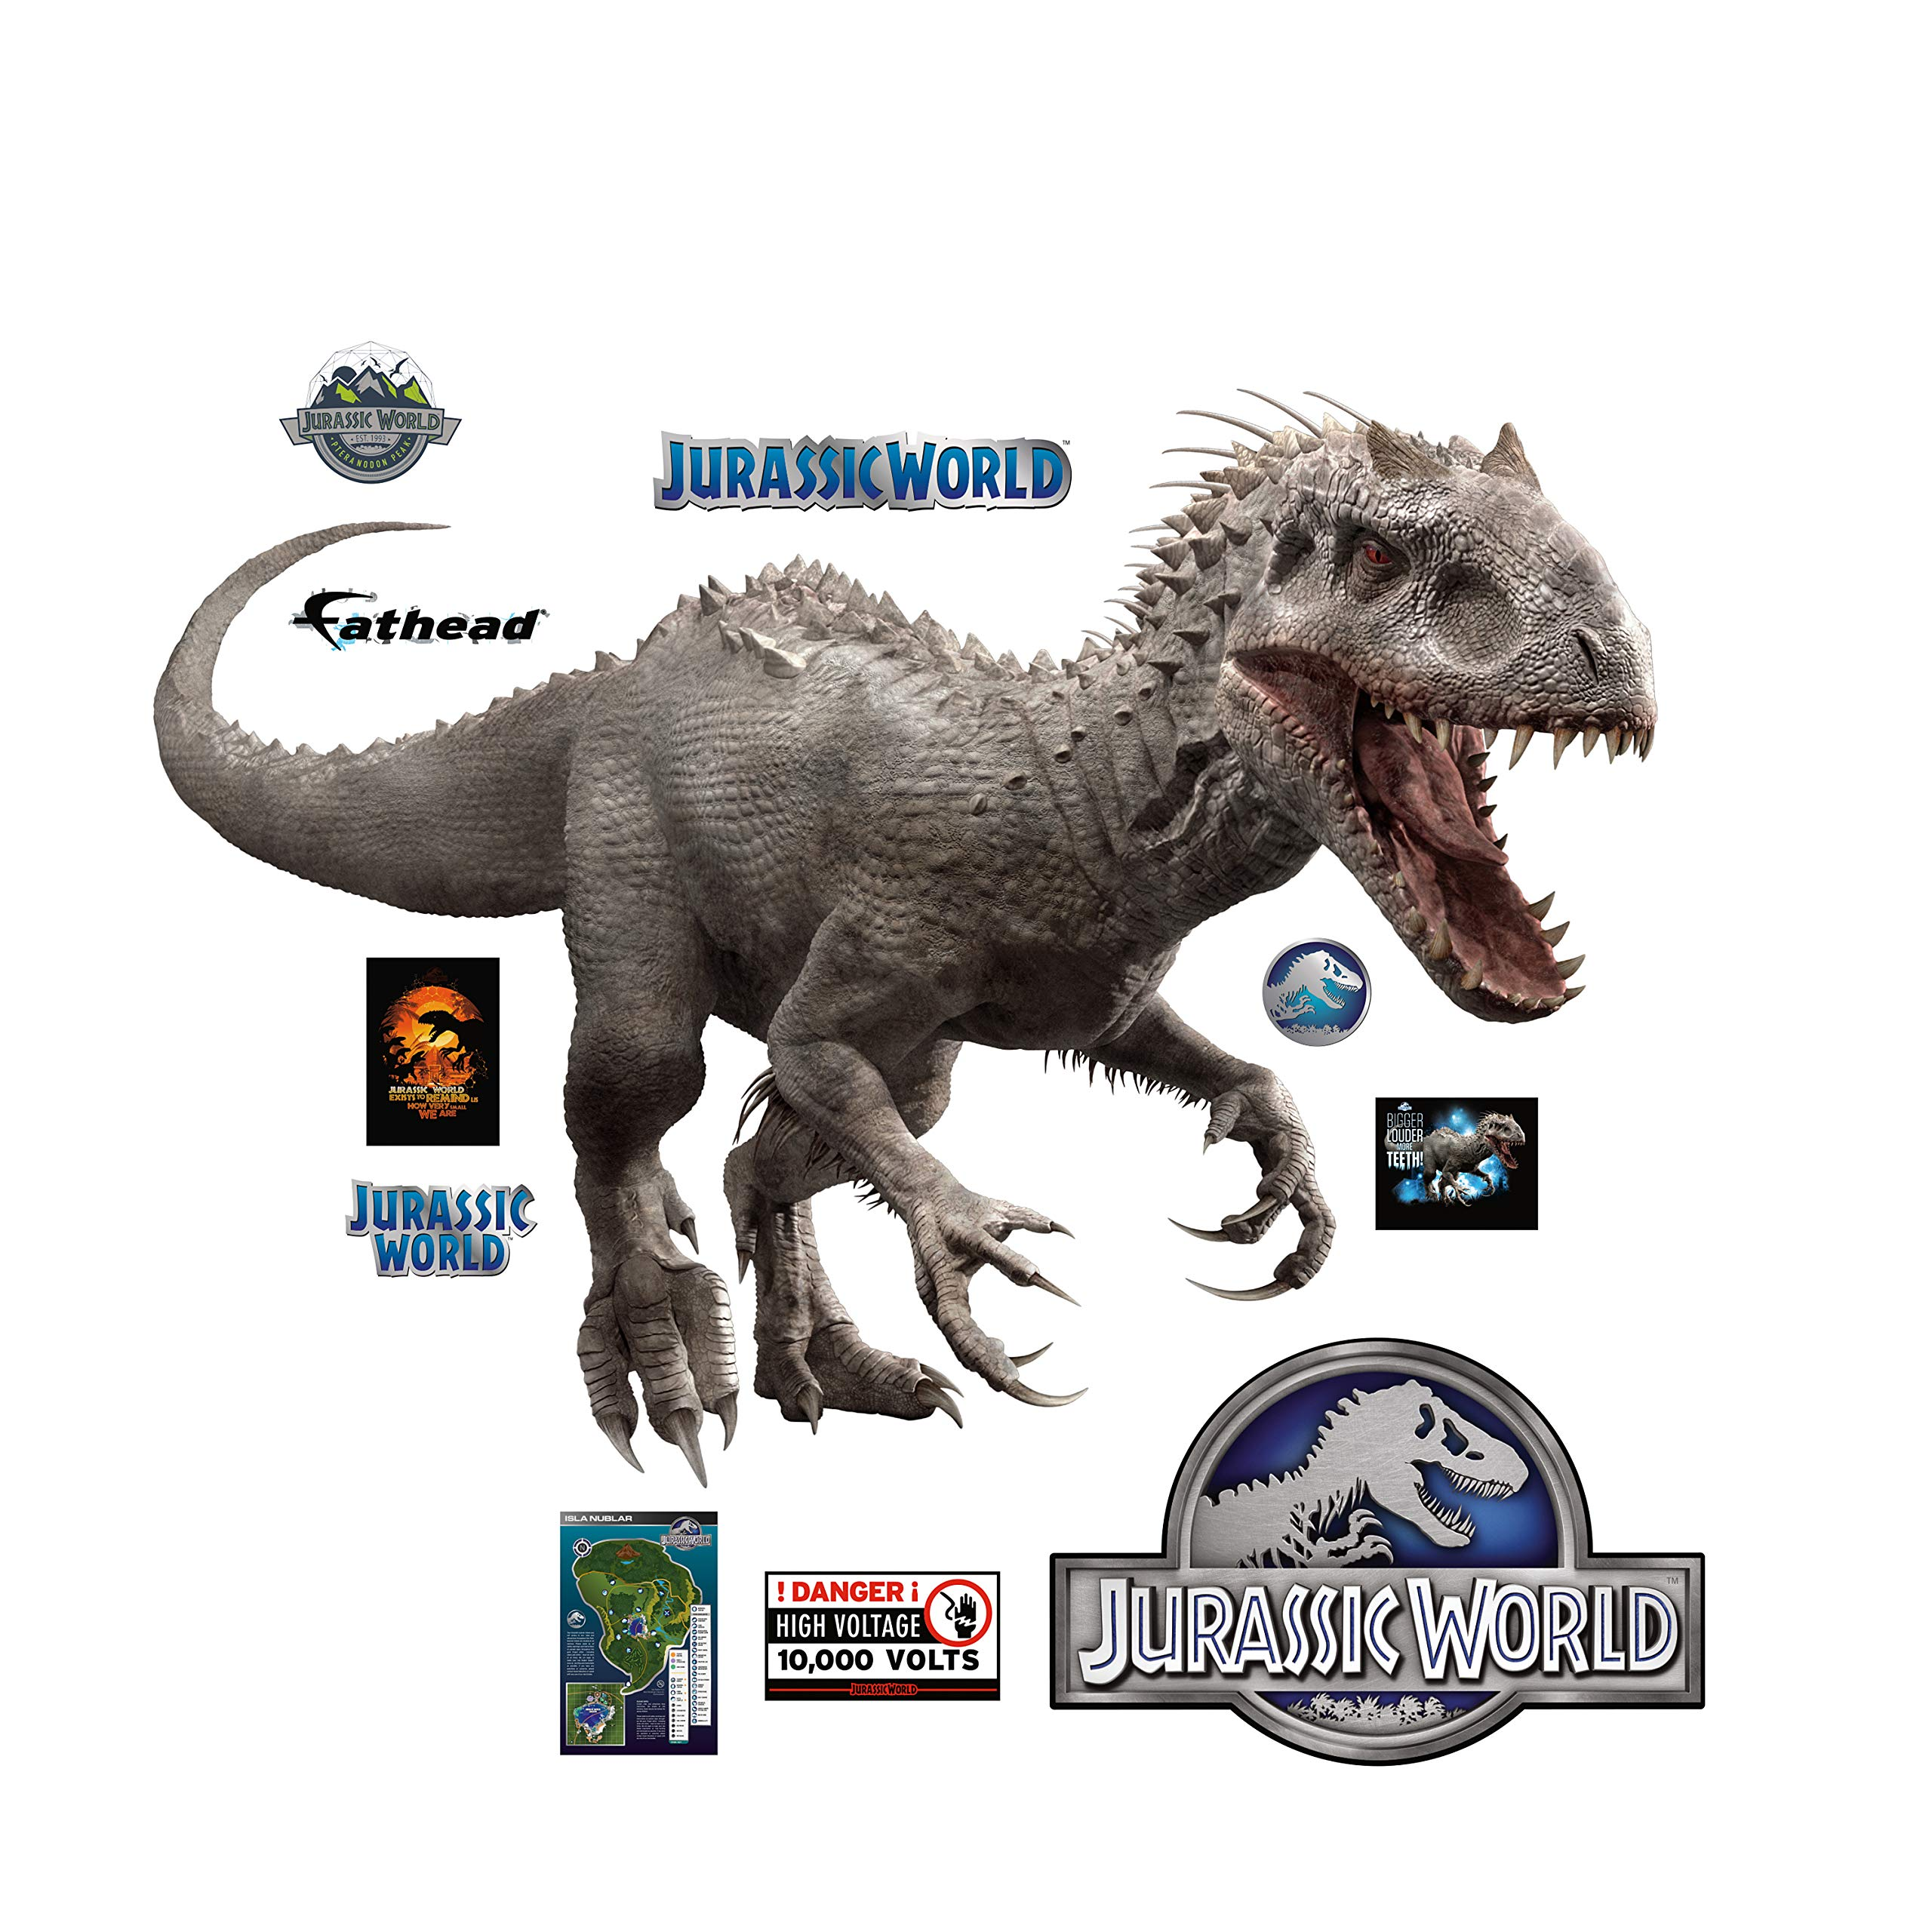 FATHEAD Indominus Rex: Jurassic World - X-Large Officially Licensed Removable Wall Decal by FATHEAD (Image #3)